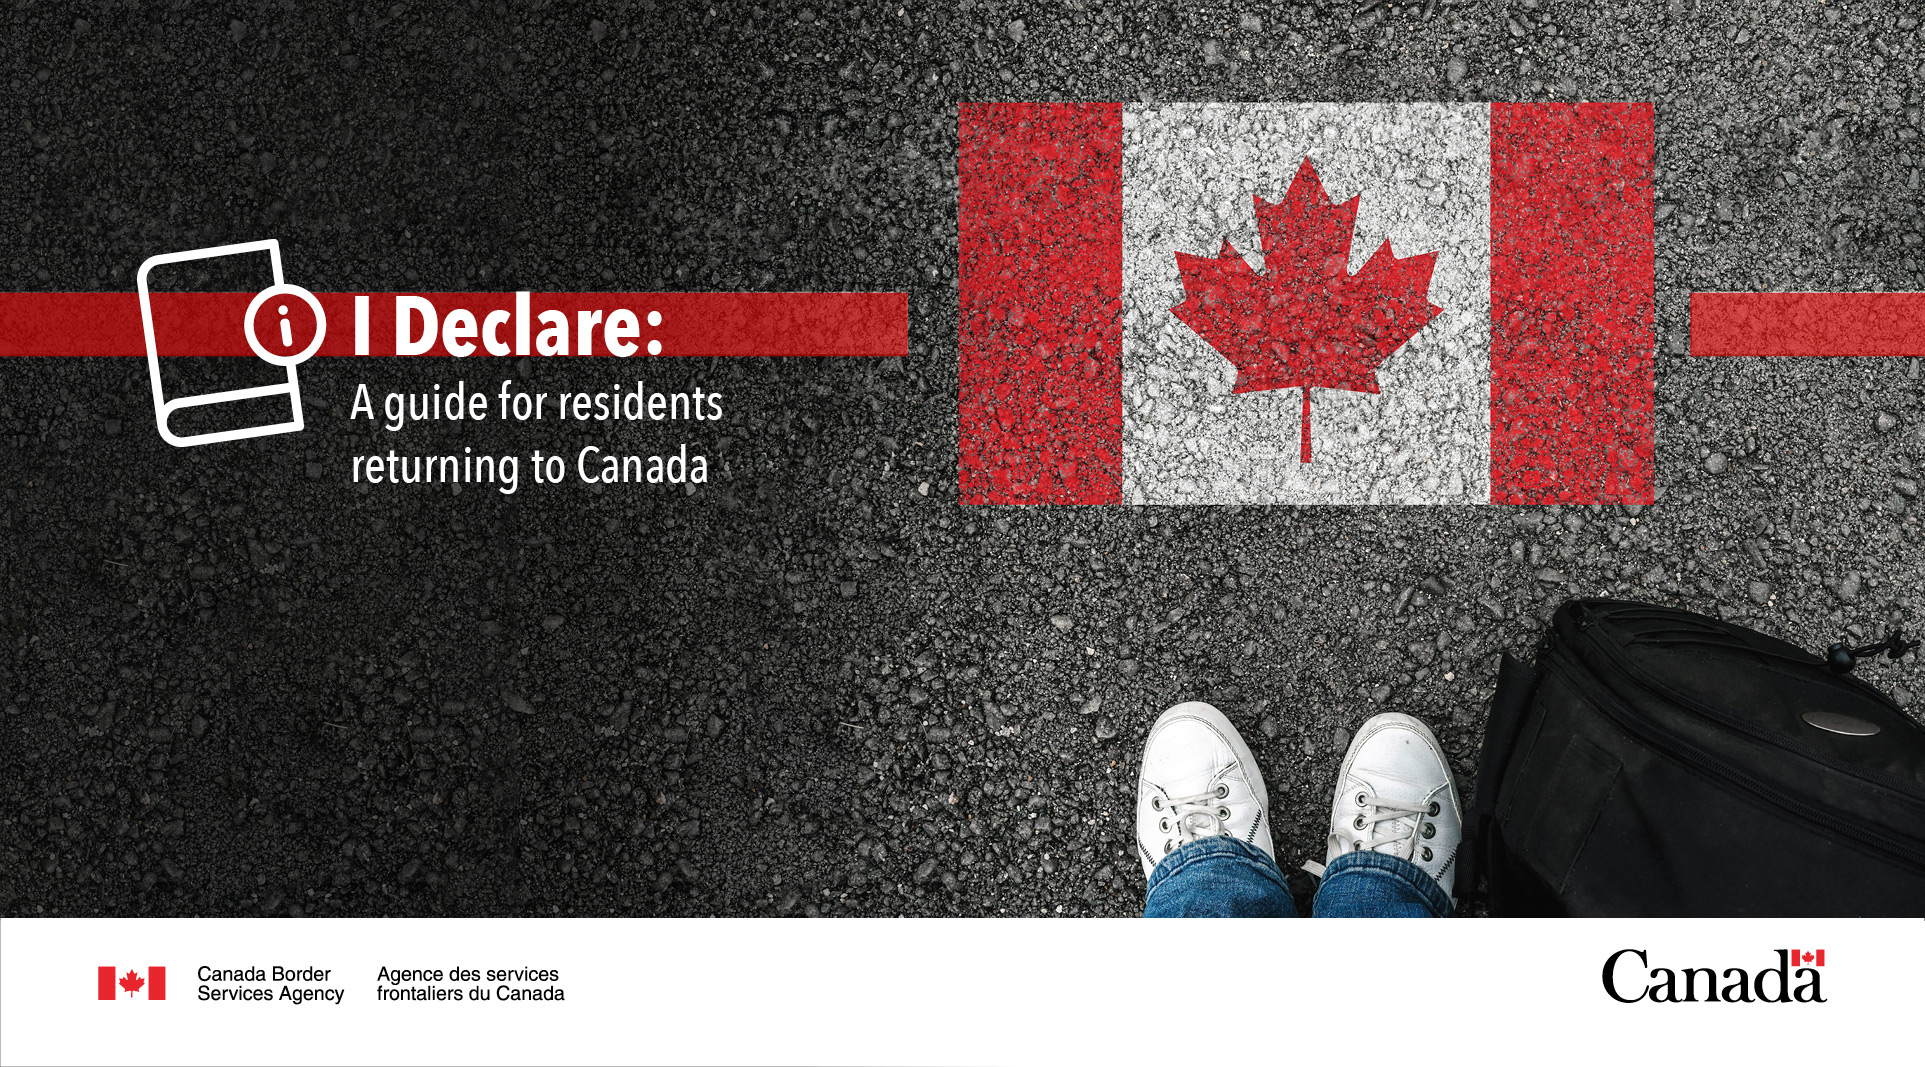 Guide for residents returning to Canada